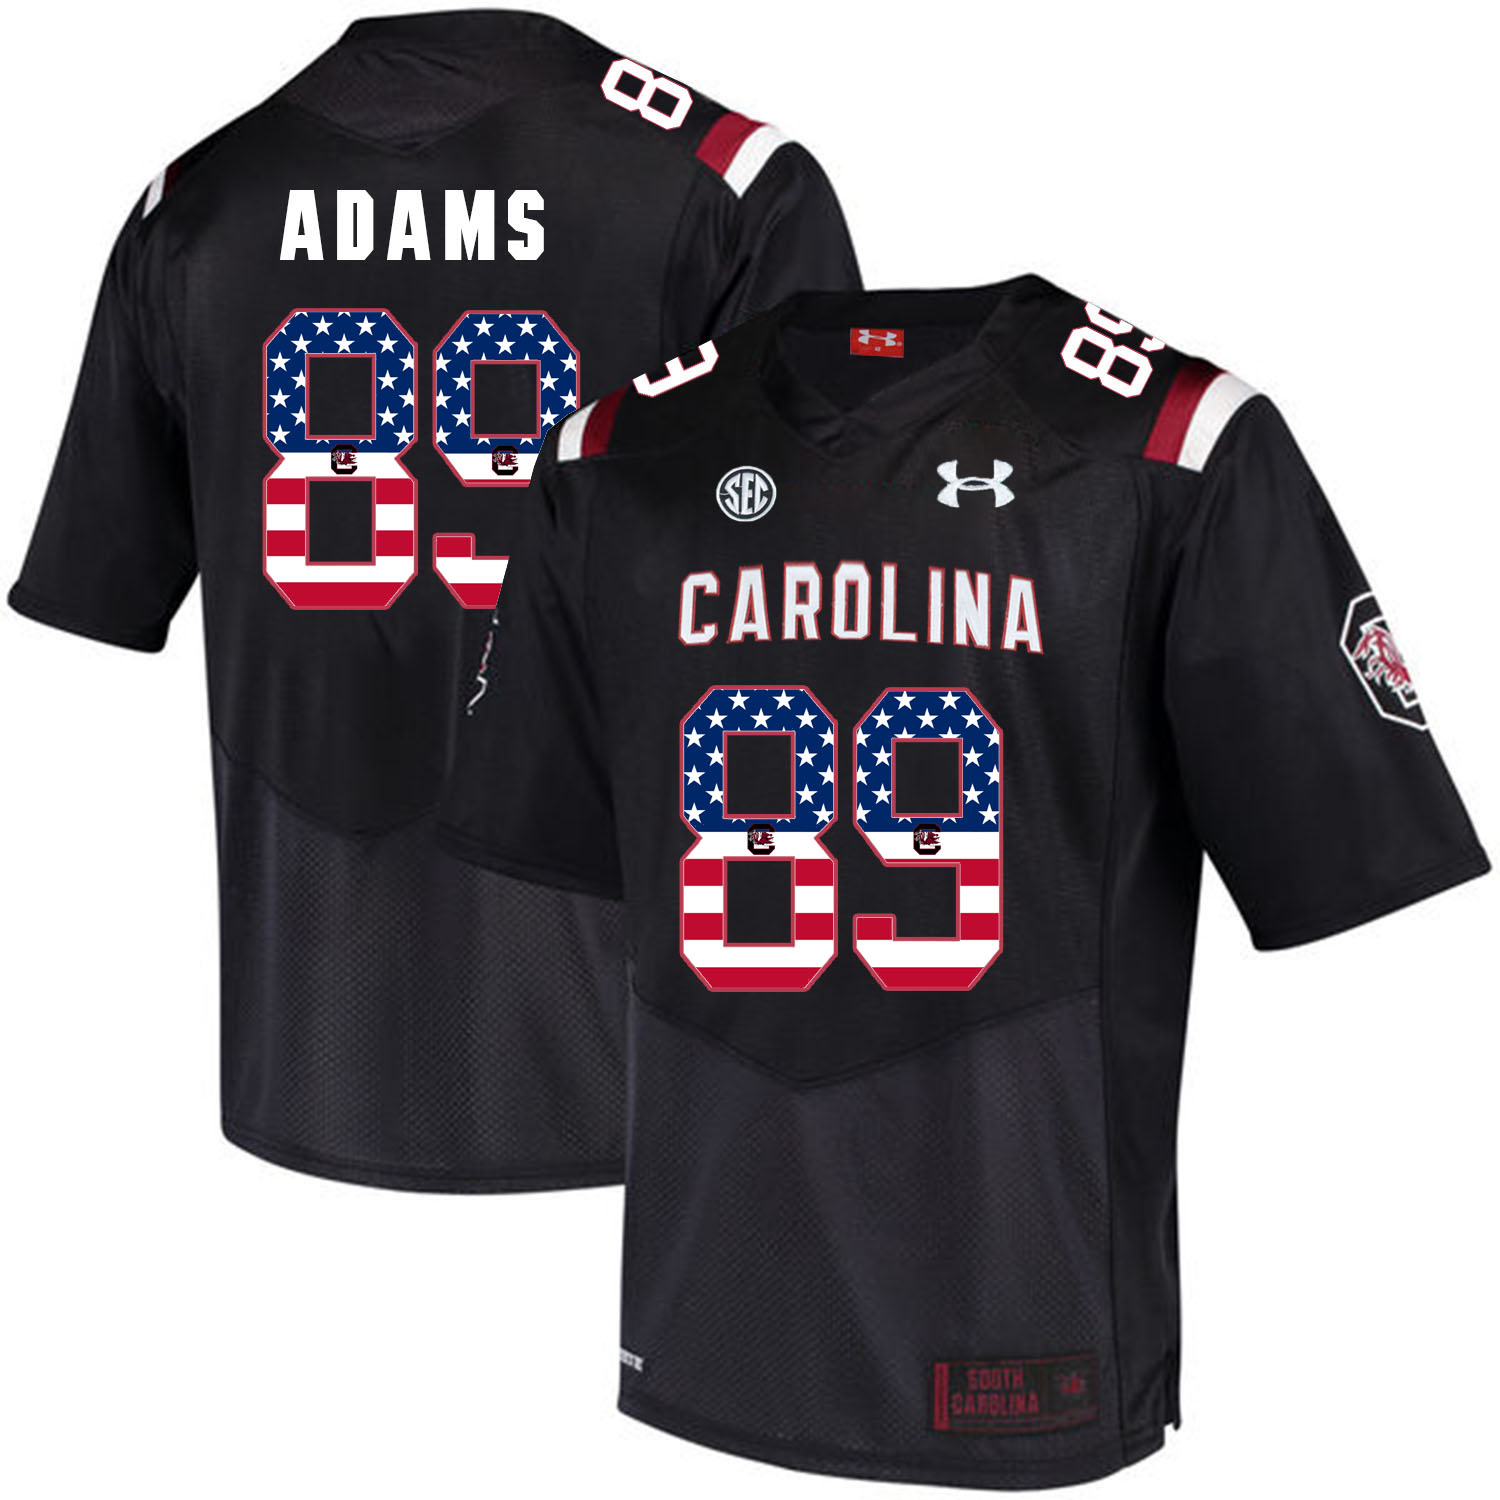 South Carolina Gamecocks 89 Jerell Adams Black USA Flag College Football Jersey